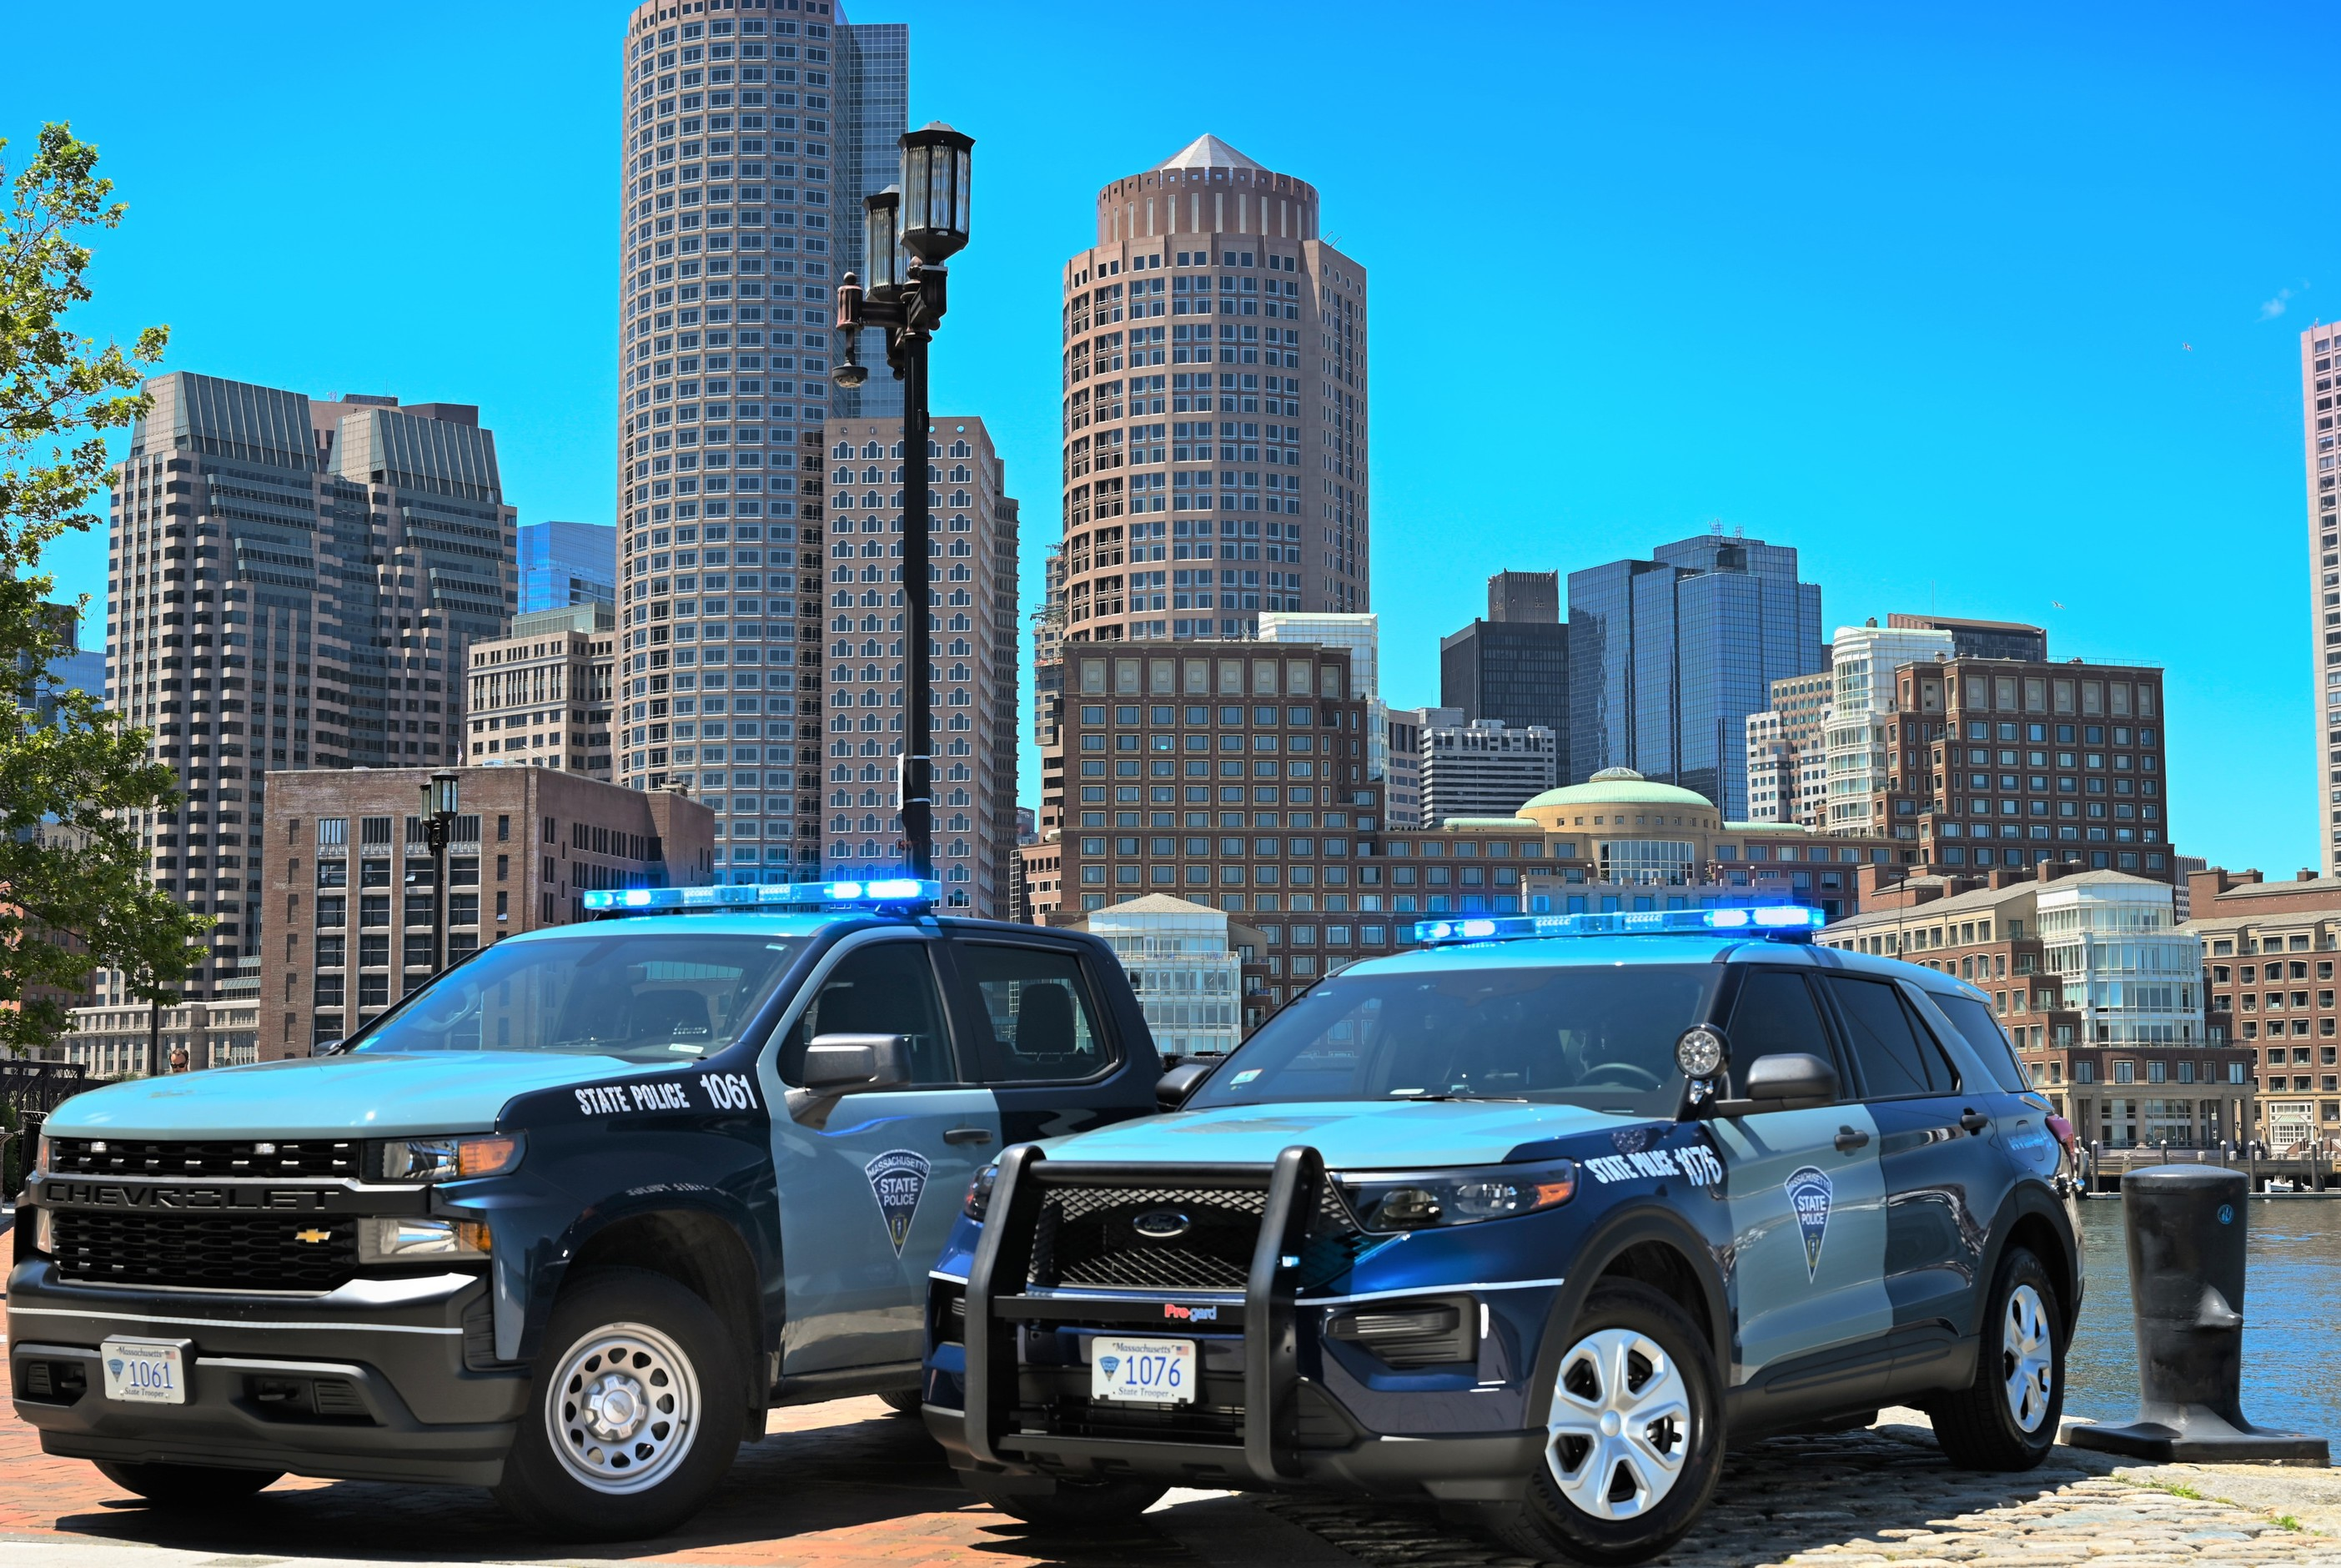 <strong>Massachusetts State Police</strong>